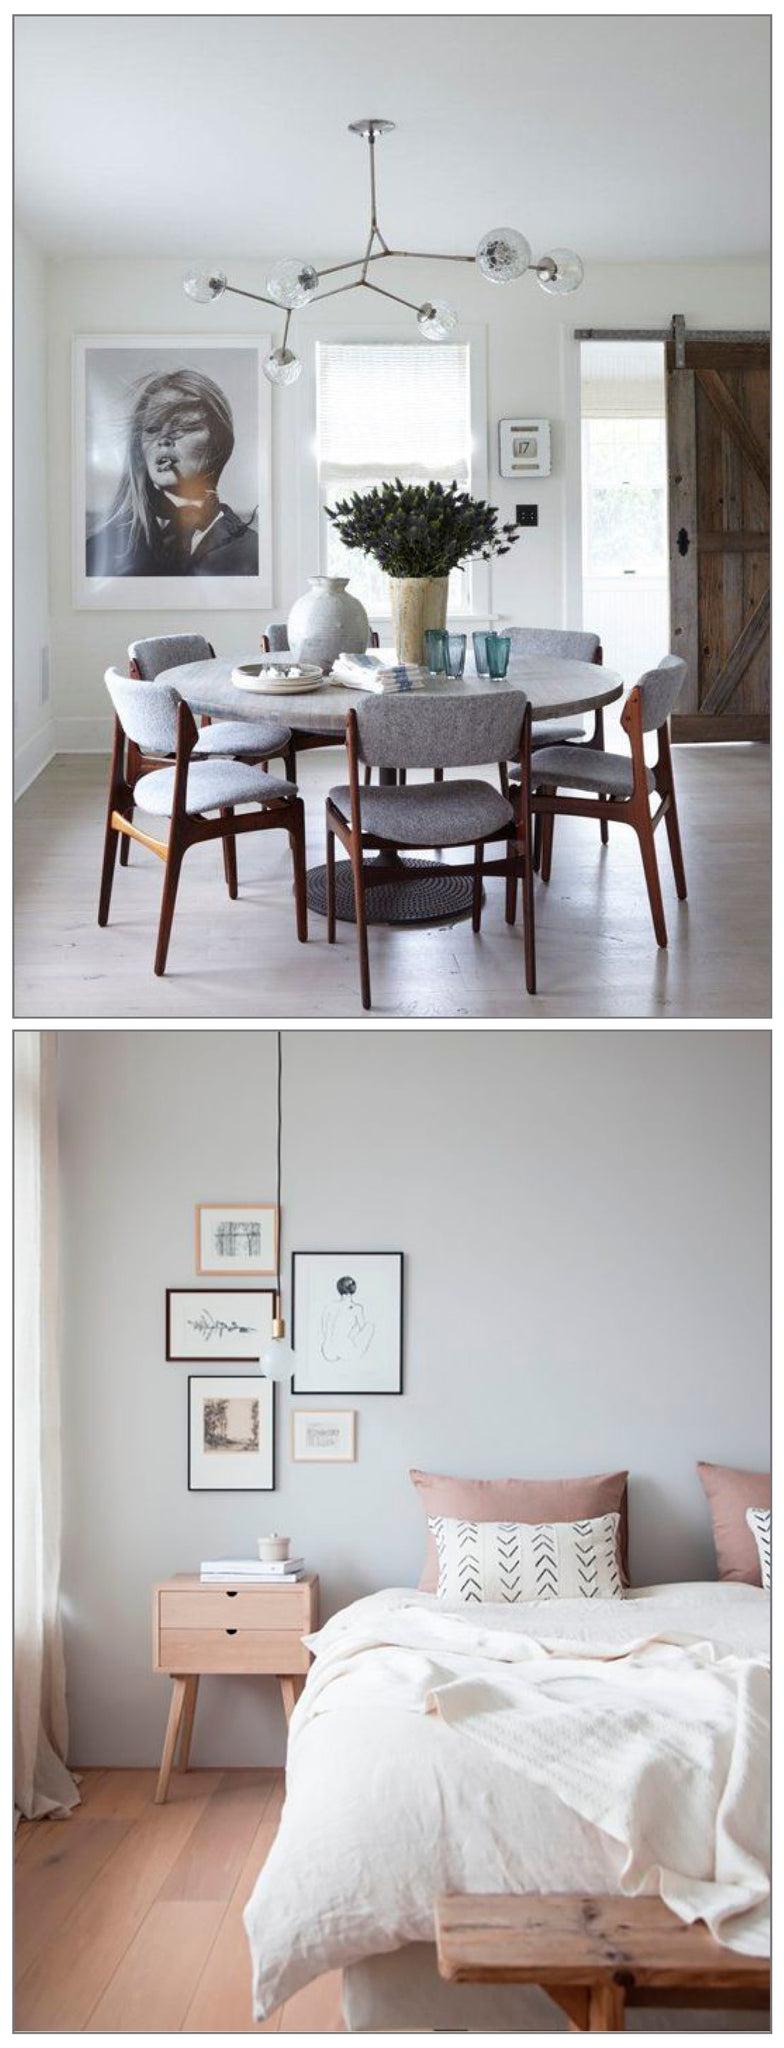 Get Spring Ready in 5: Clear those Surfaces! A room with clear space and surfaces looks inviting, clean and modern. That's not to say we are advocating minimalism for everyone , just striping things back a bit to give each room a fresh start.